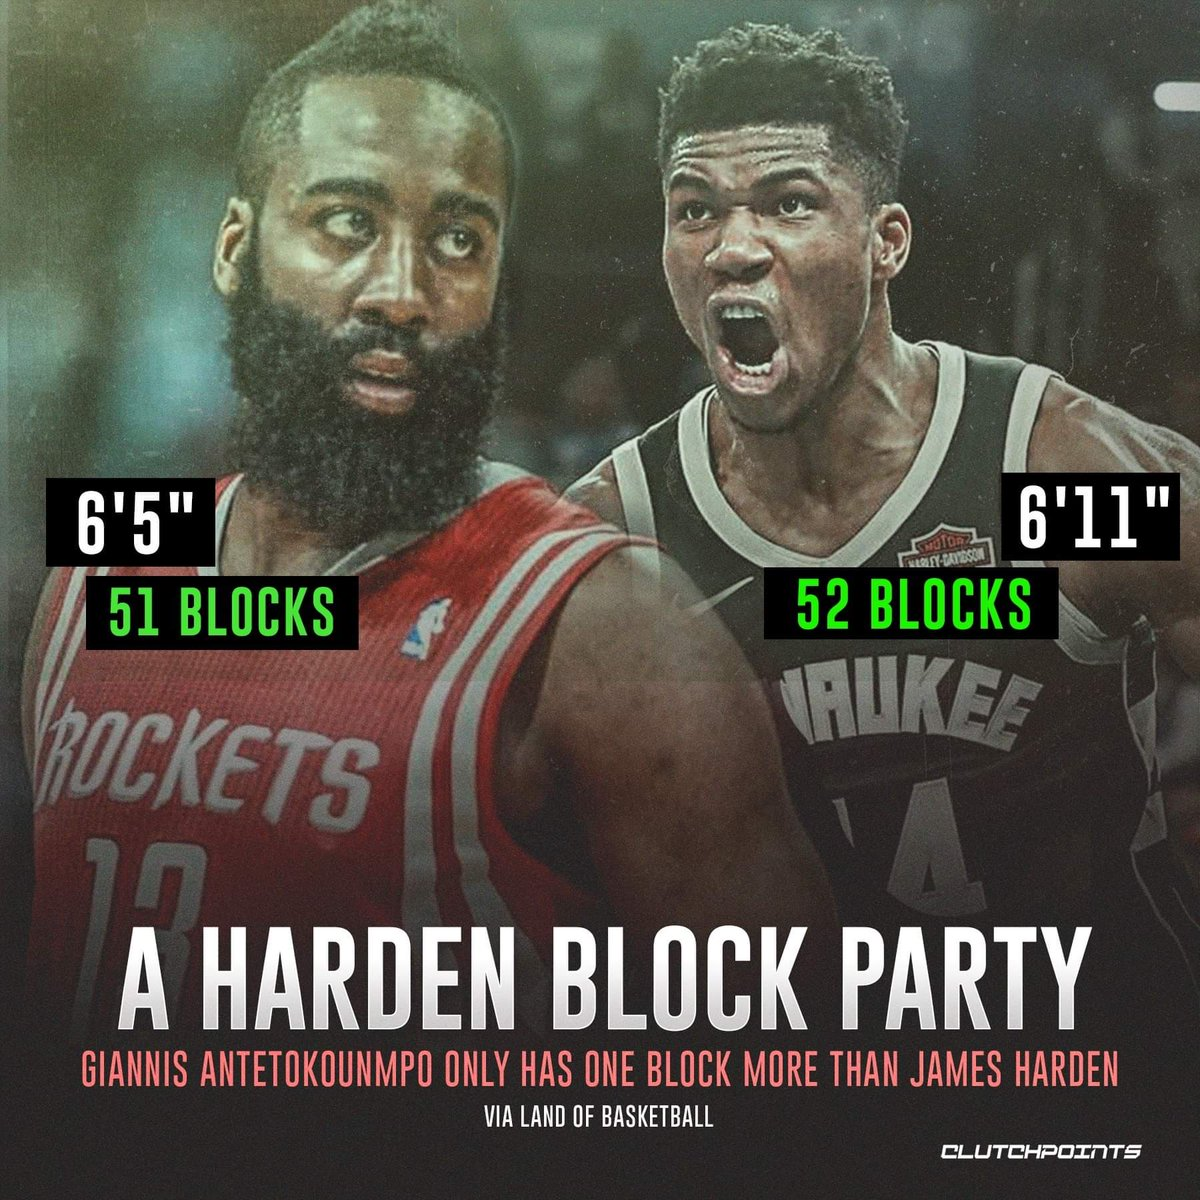 @Giannis_An34 you might want to step your game up.  @JHarden13 is about to pass you in blocks #FearTheBeard #Rockets #Defense  #GetthatShitOuttaHere